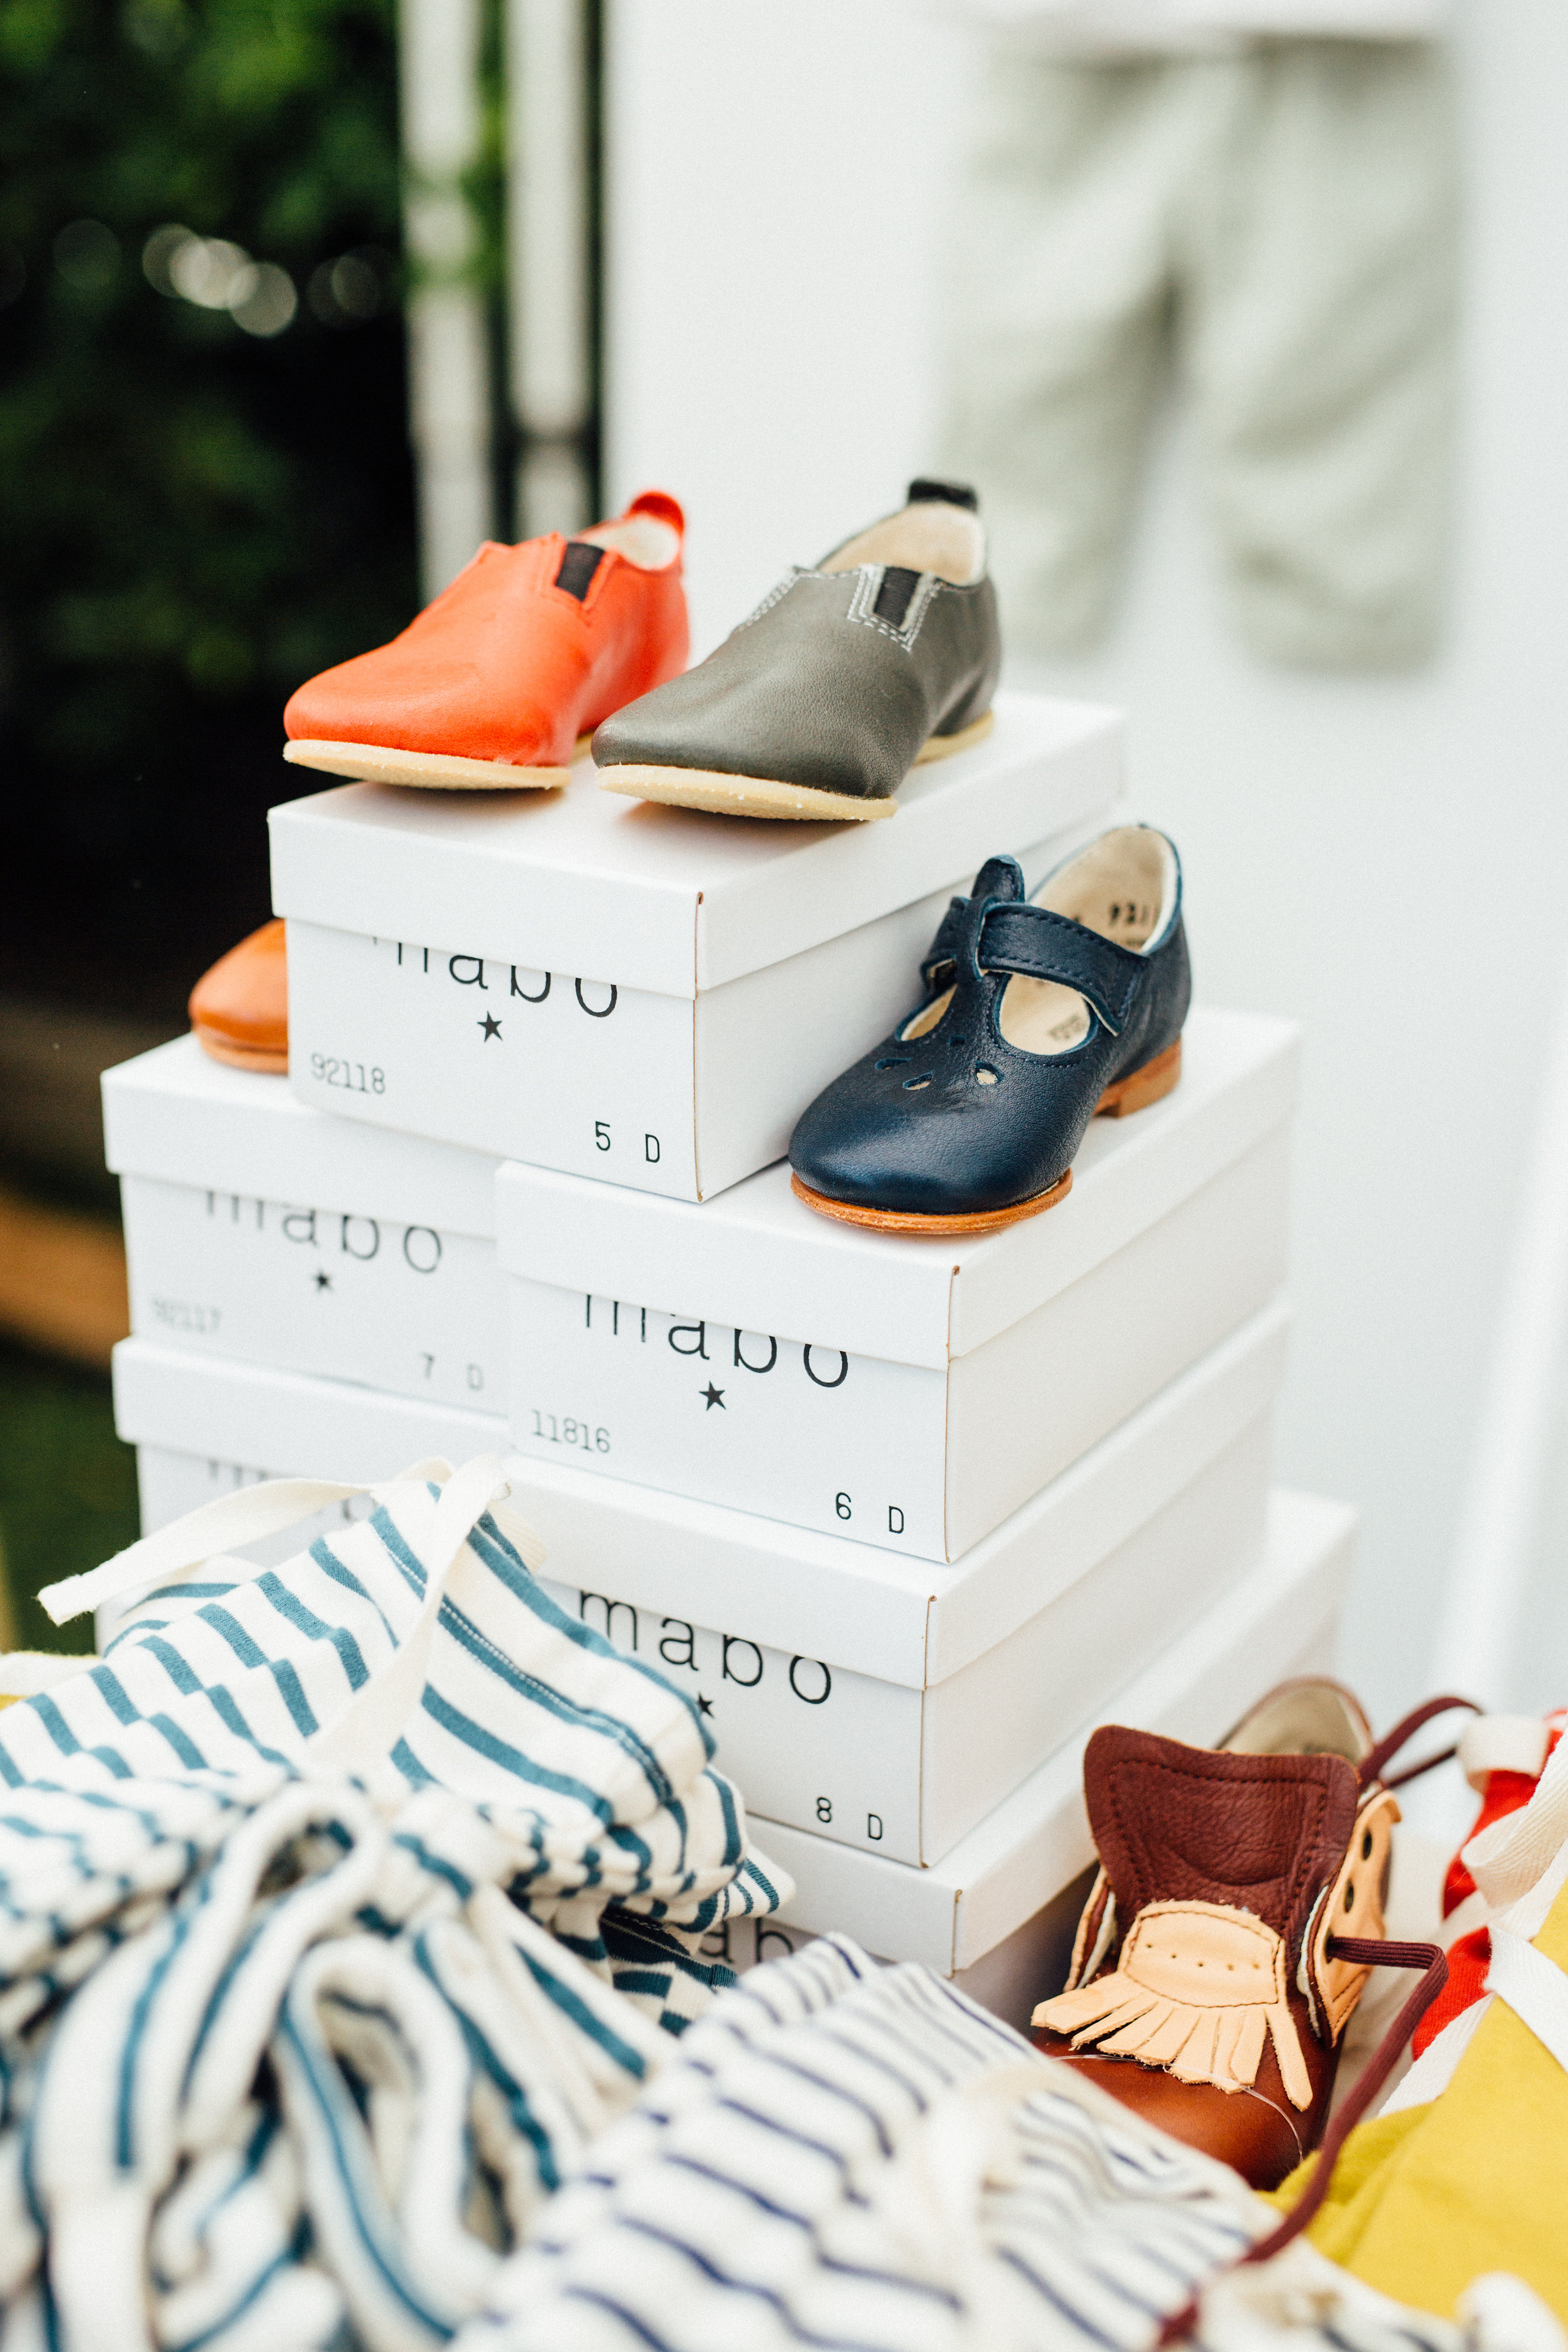 ShopUp Mabo shoes